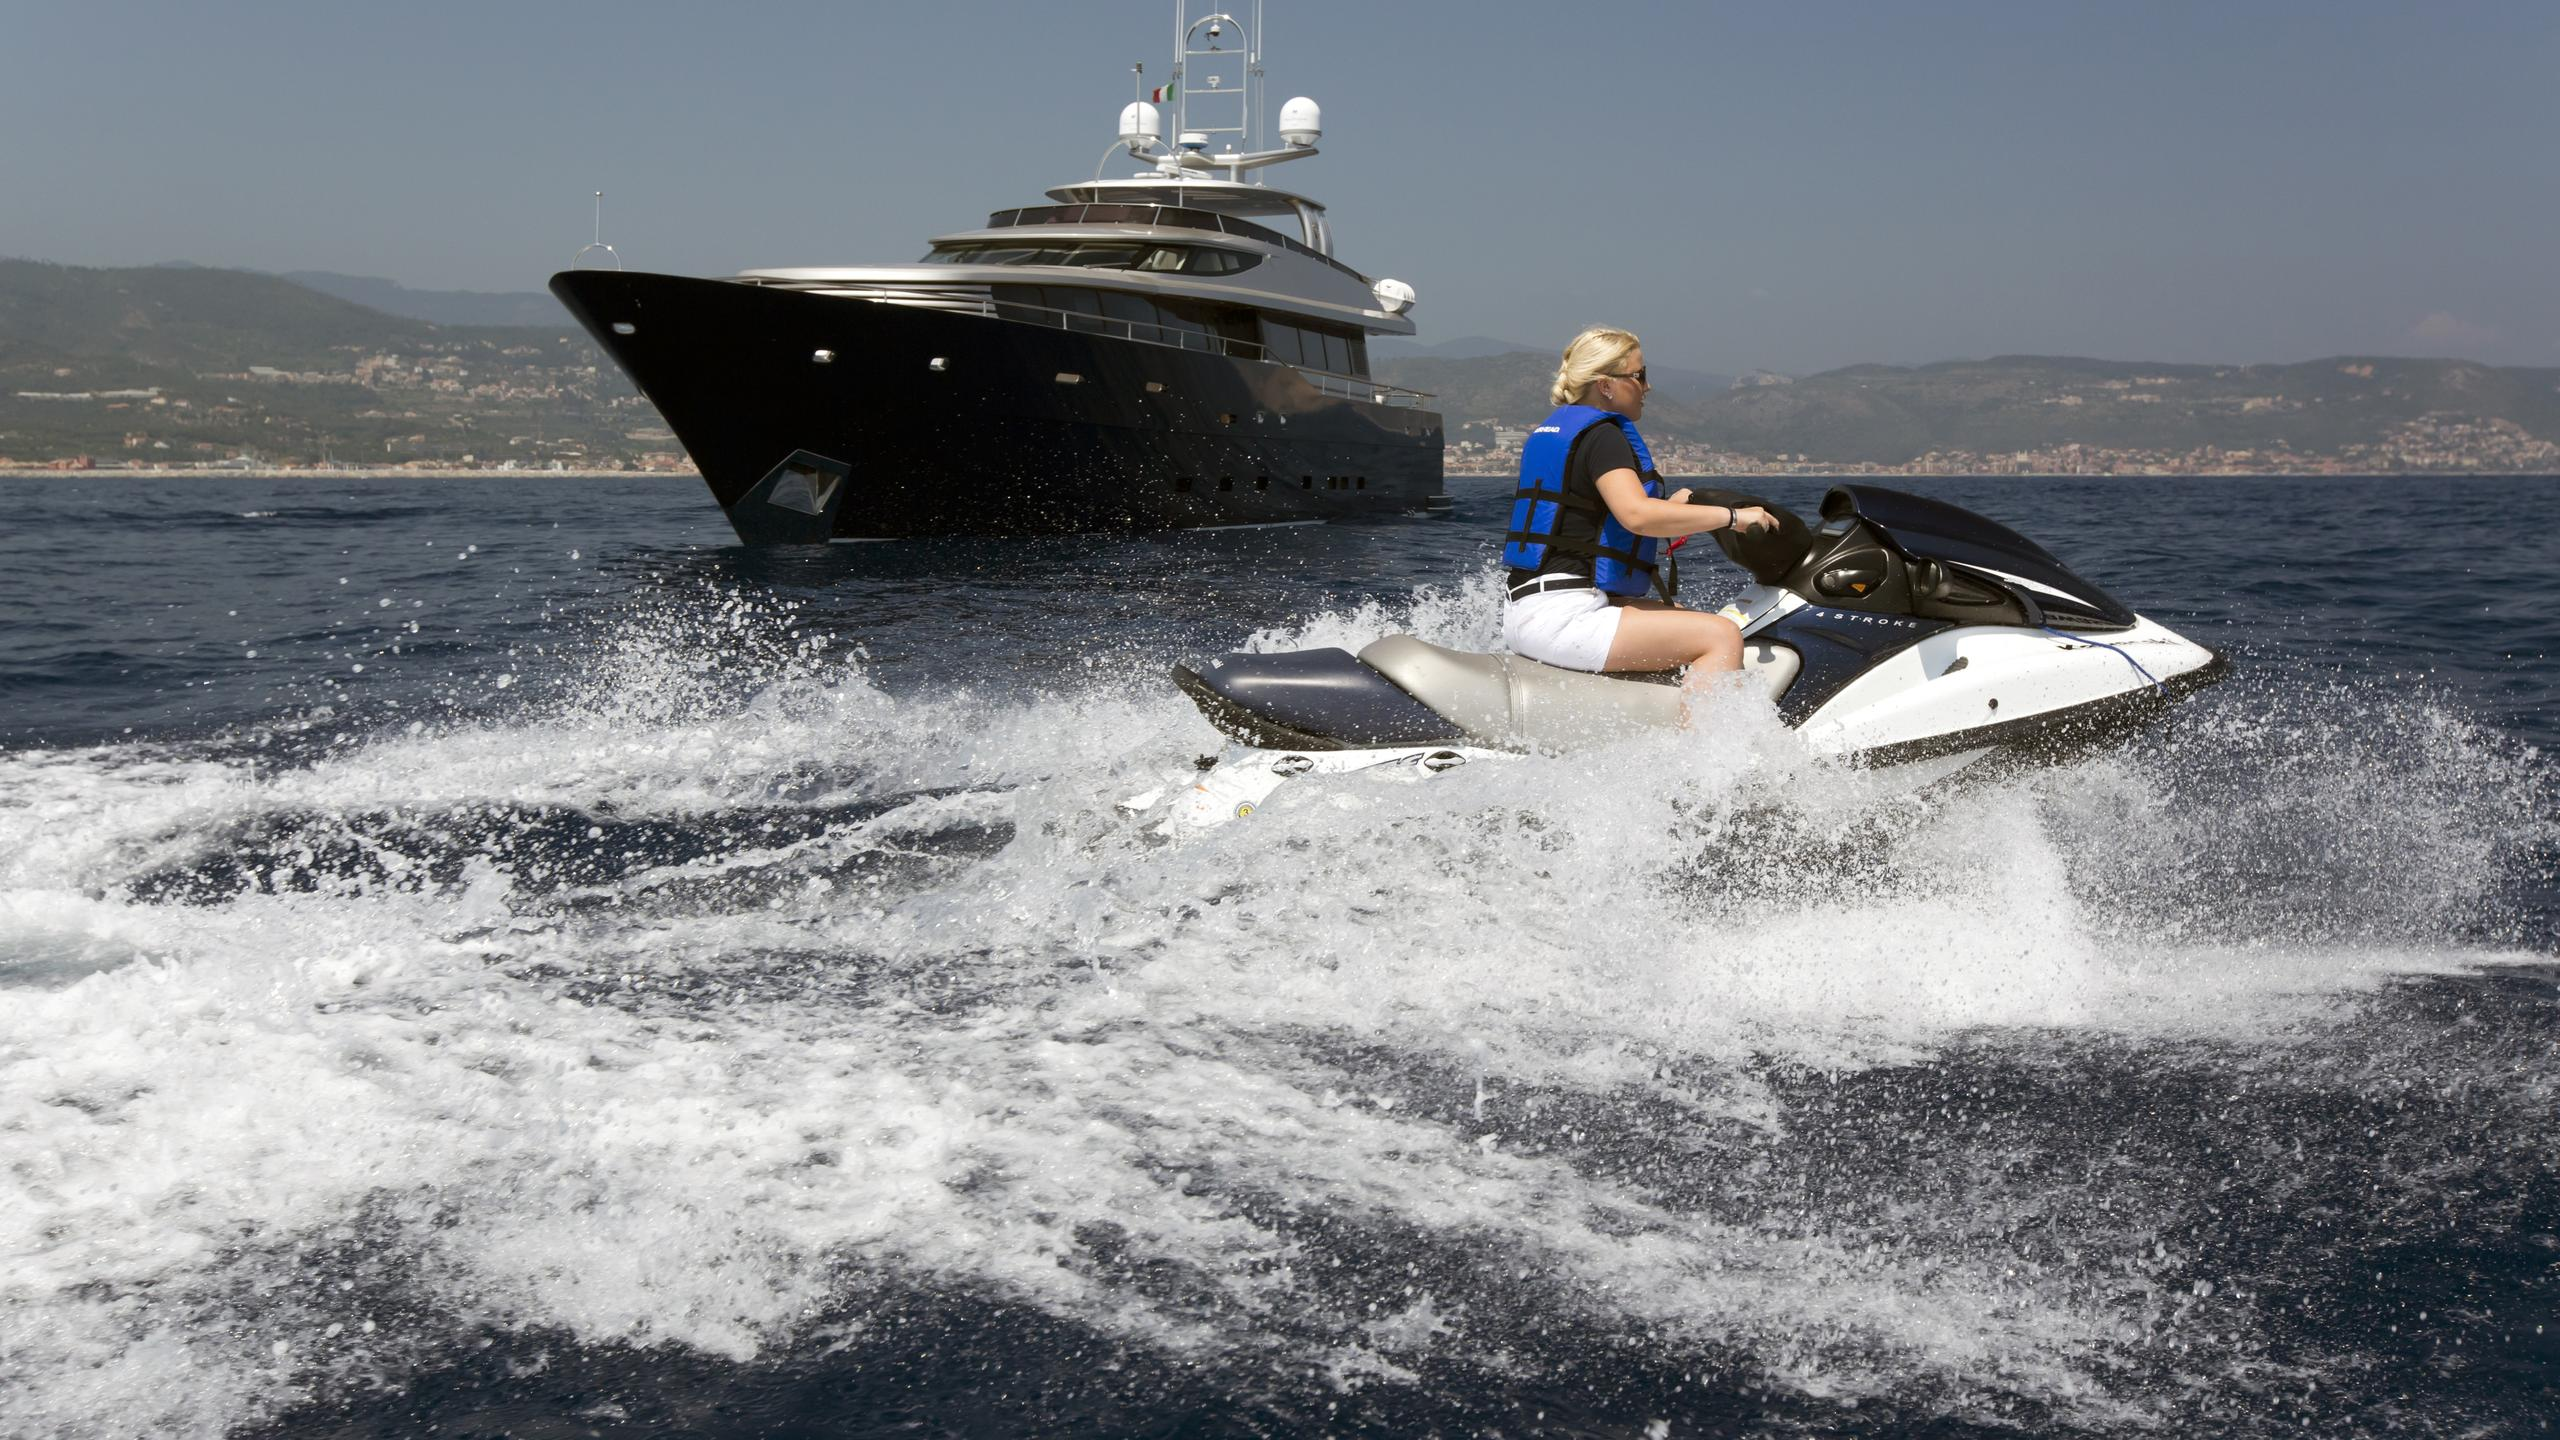 xo-of-the-seas-yacht-jetski